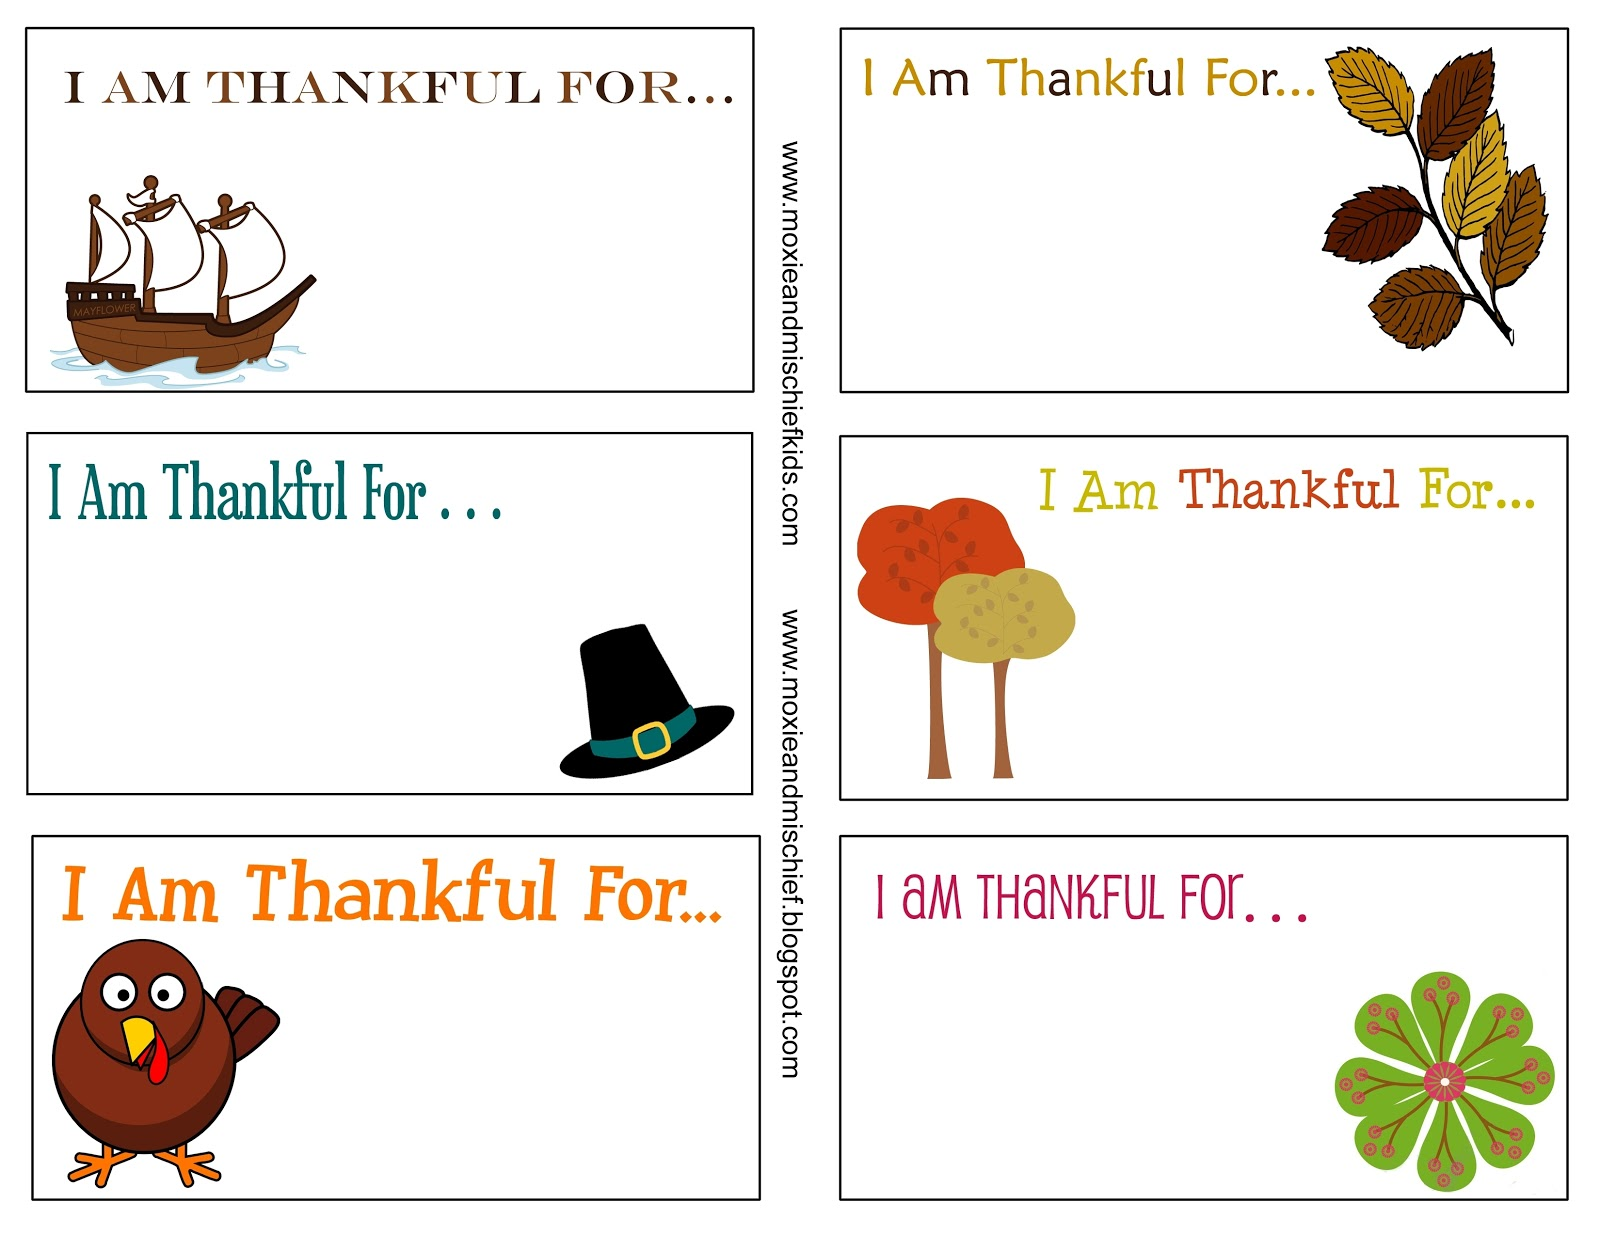 Moxie And Mischief Blog Freebies Thanksgiving Thankful Card Printables